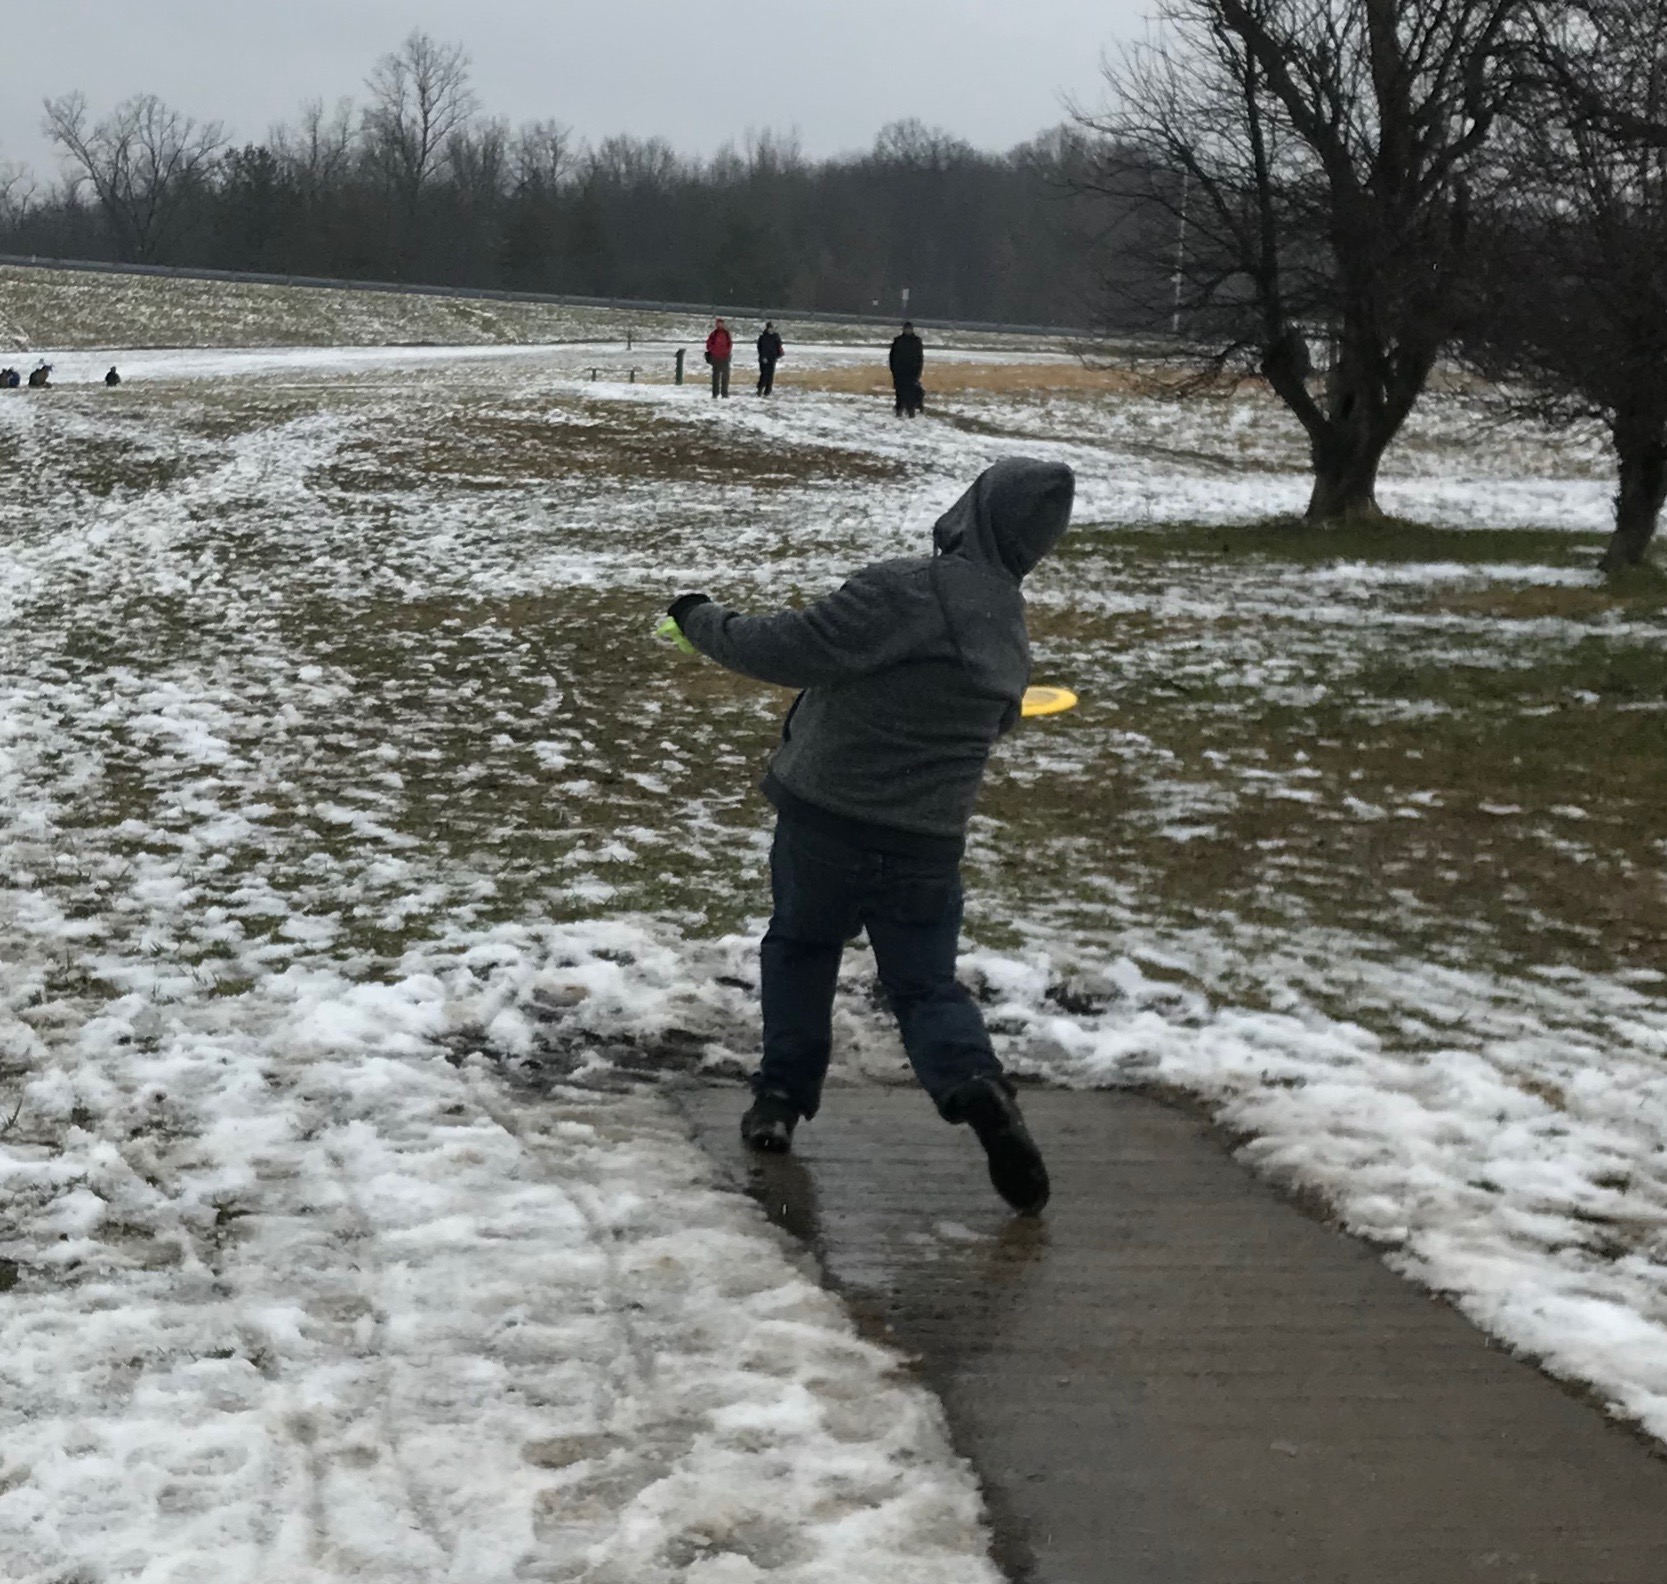 Photo:  Connor Flood PDGA #45684  launching a forehand drive